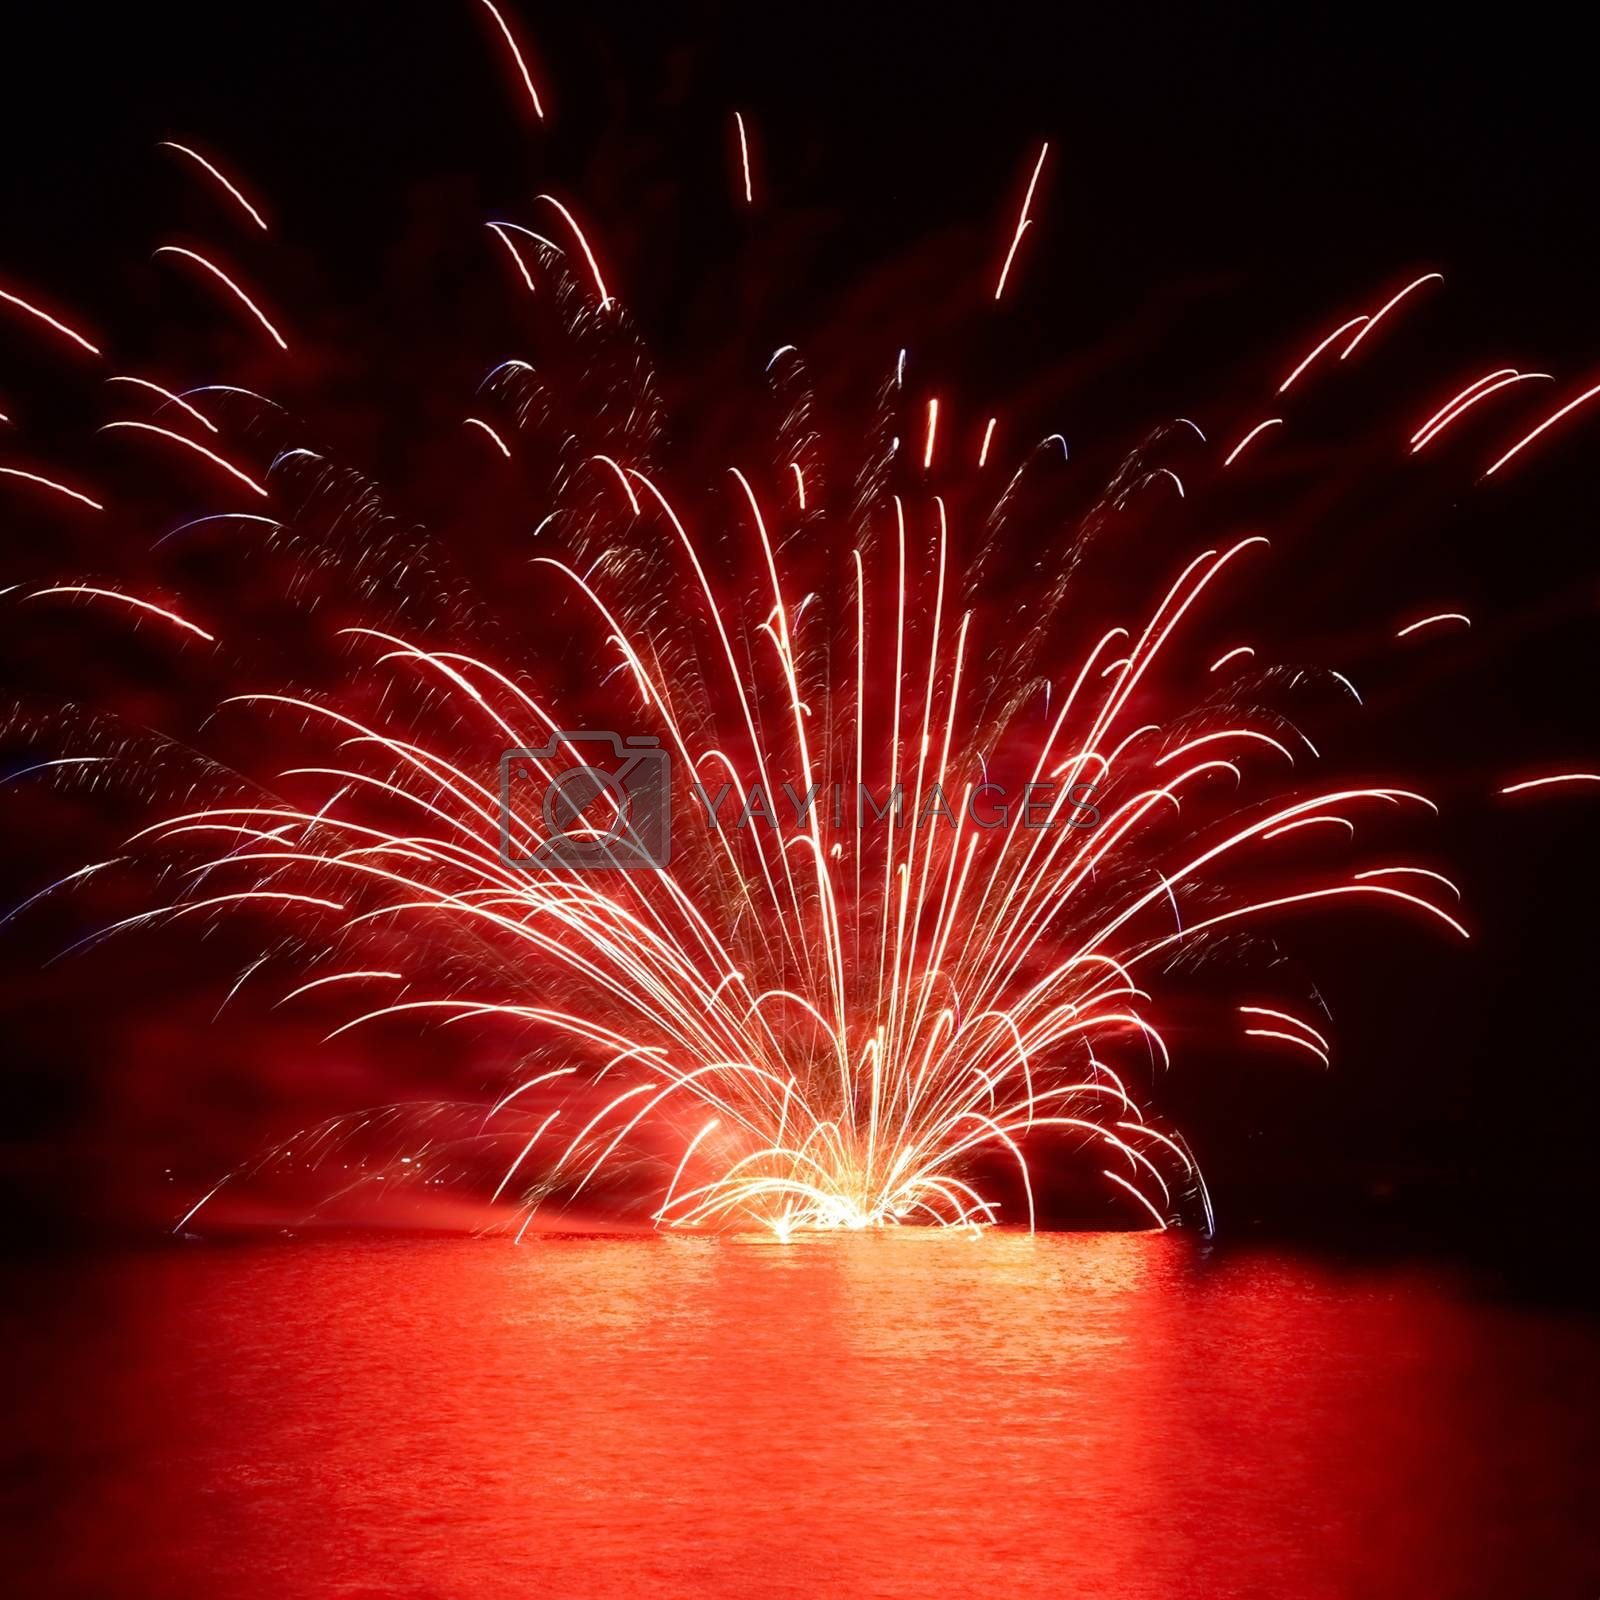 Red holiday fireworks on the lake with black sky background